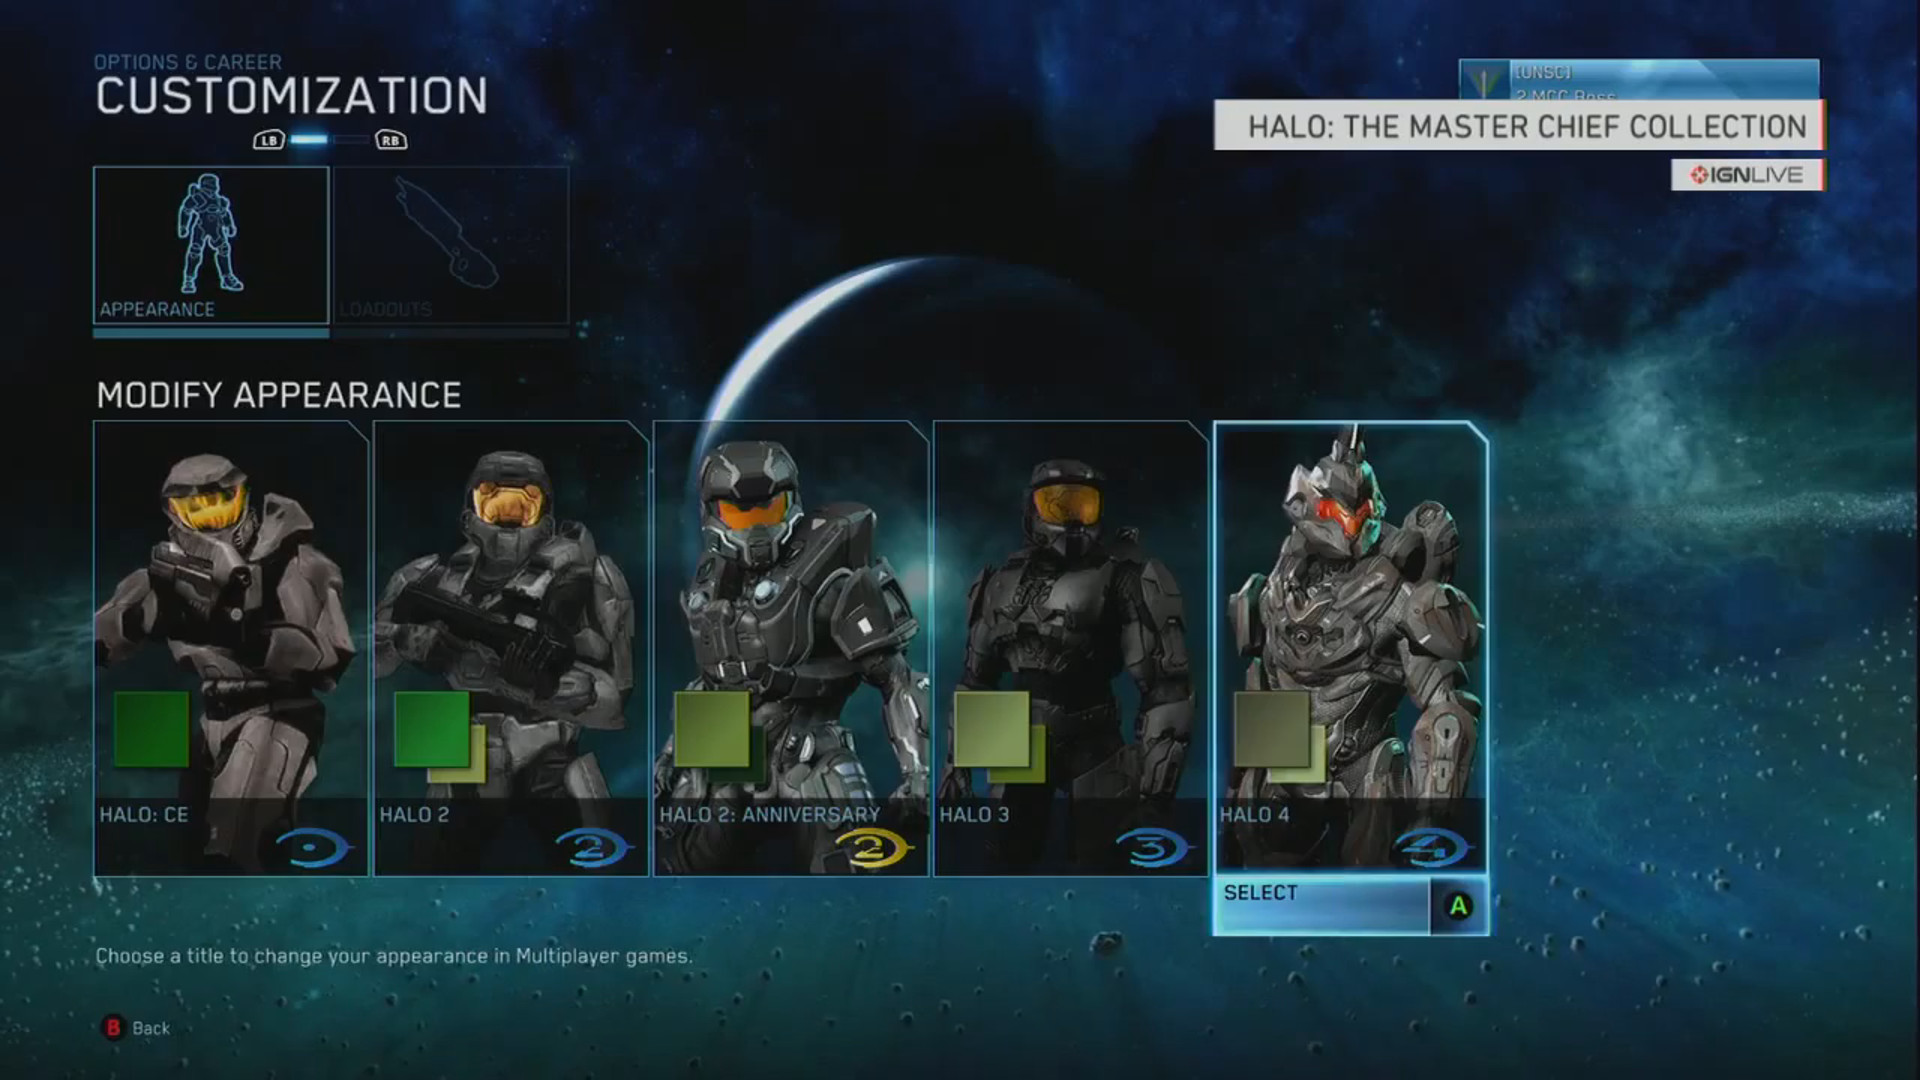 1920x1080 Halo Master Chief Collection Armor Customization